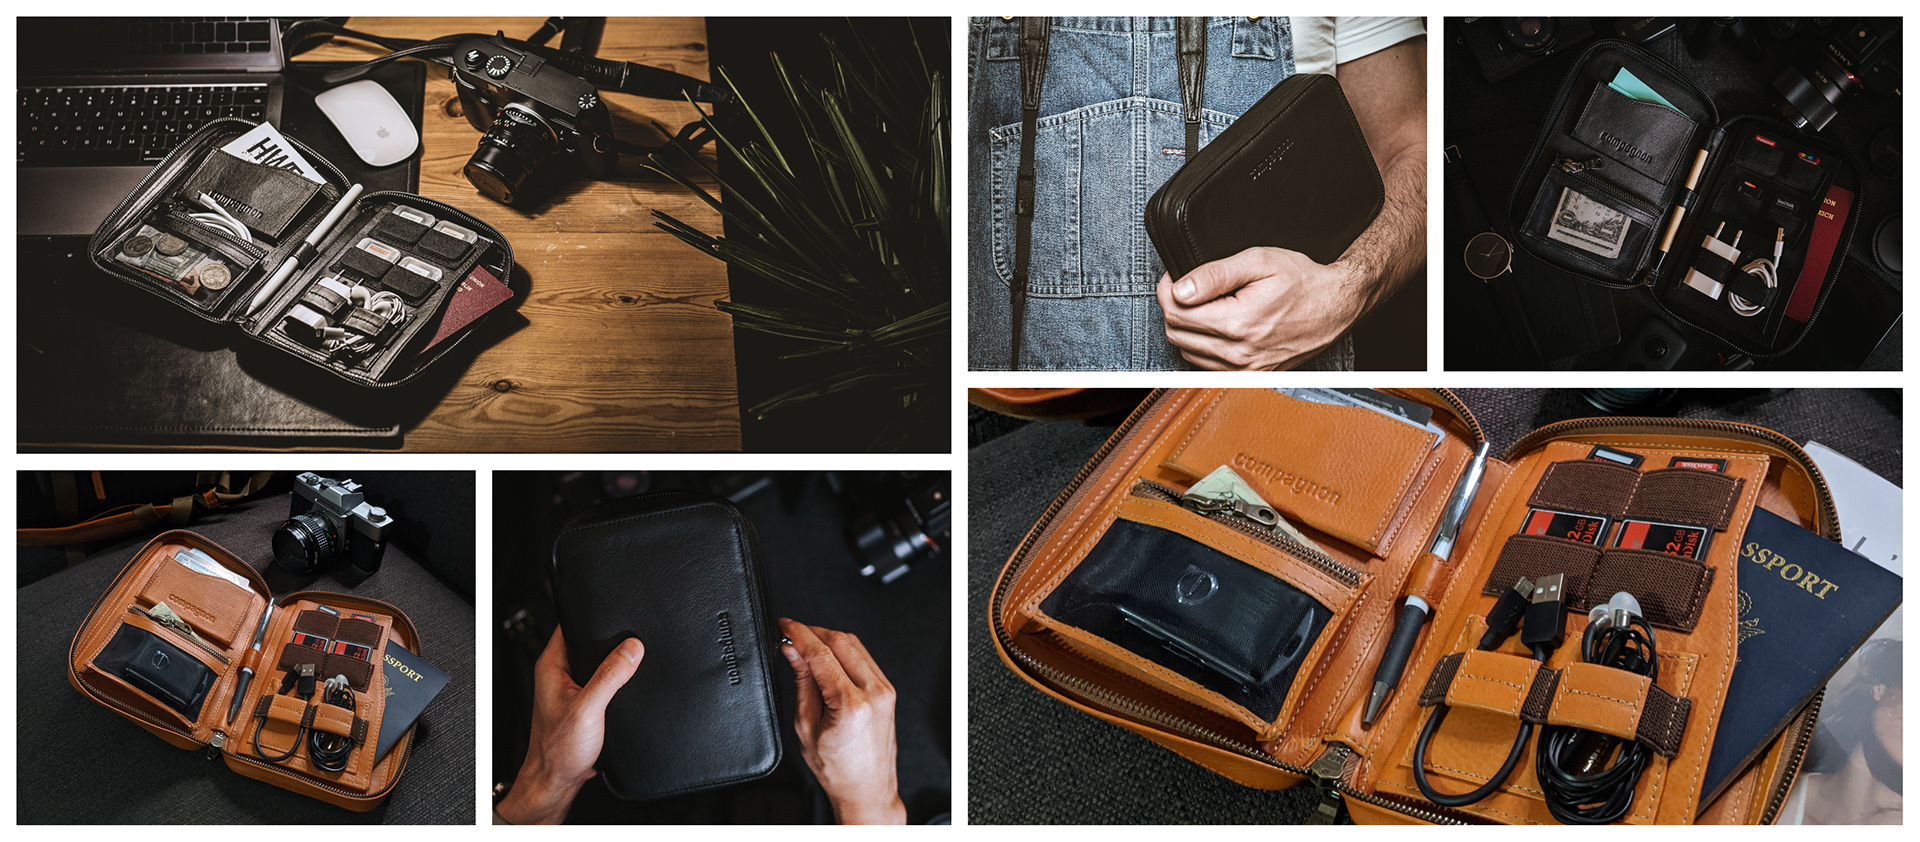 compagnon_folio7_cardwallet_leatherbag_businessbag_memorycards